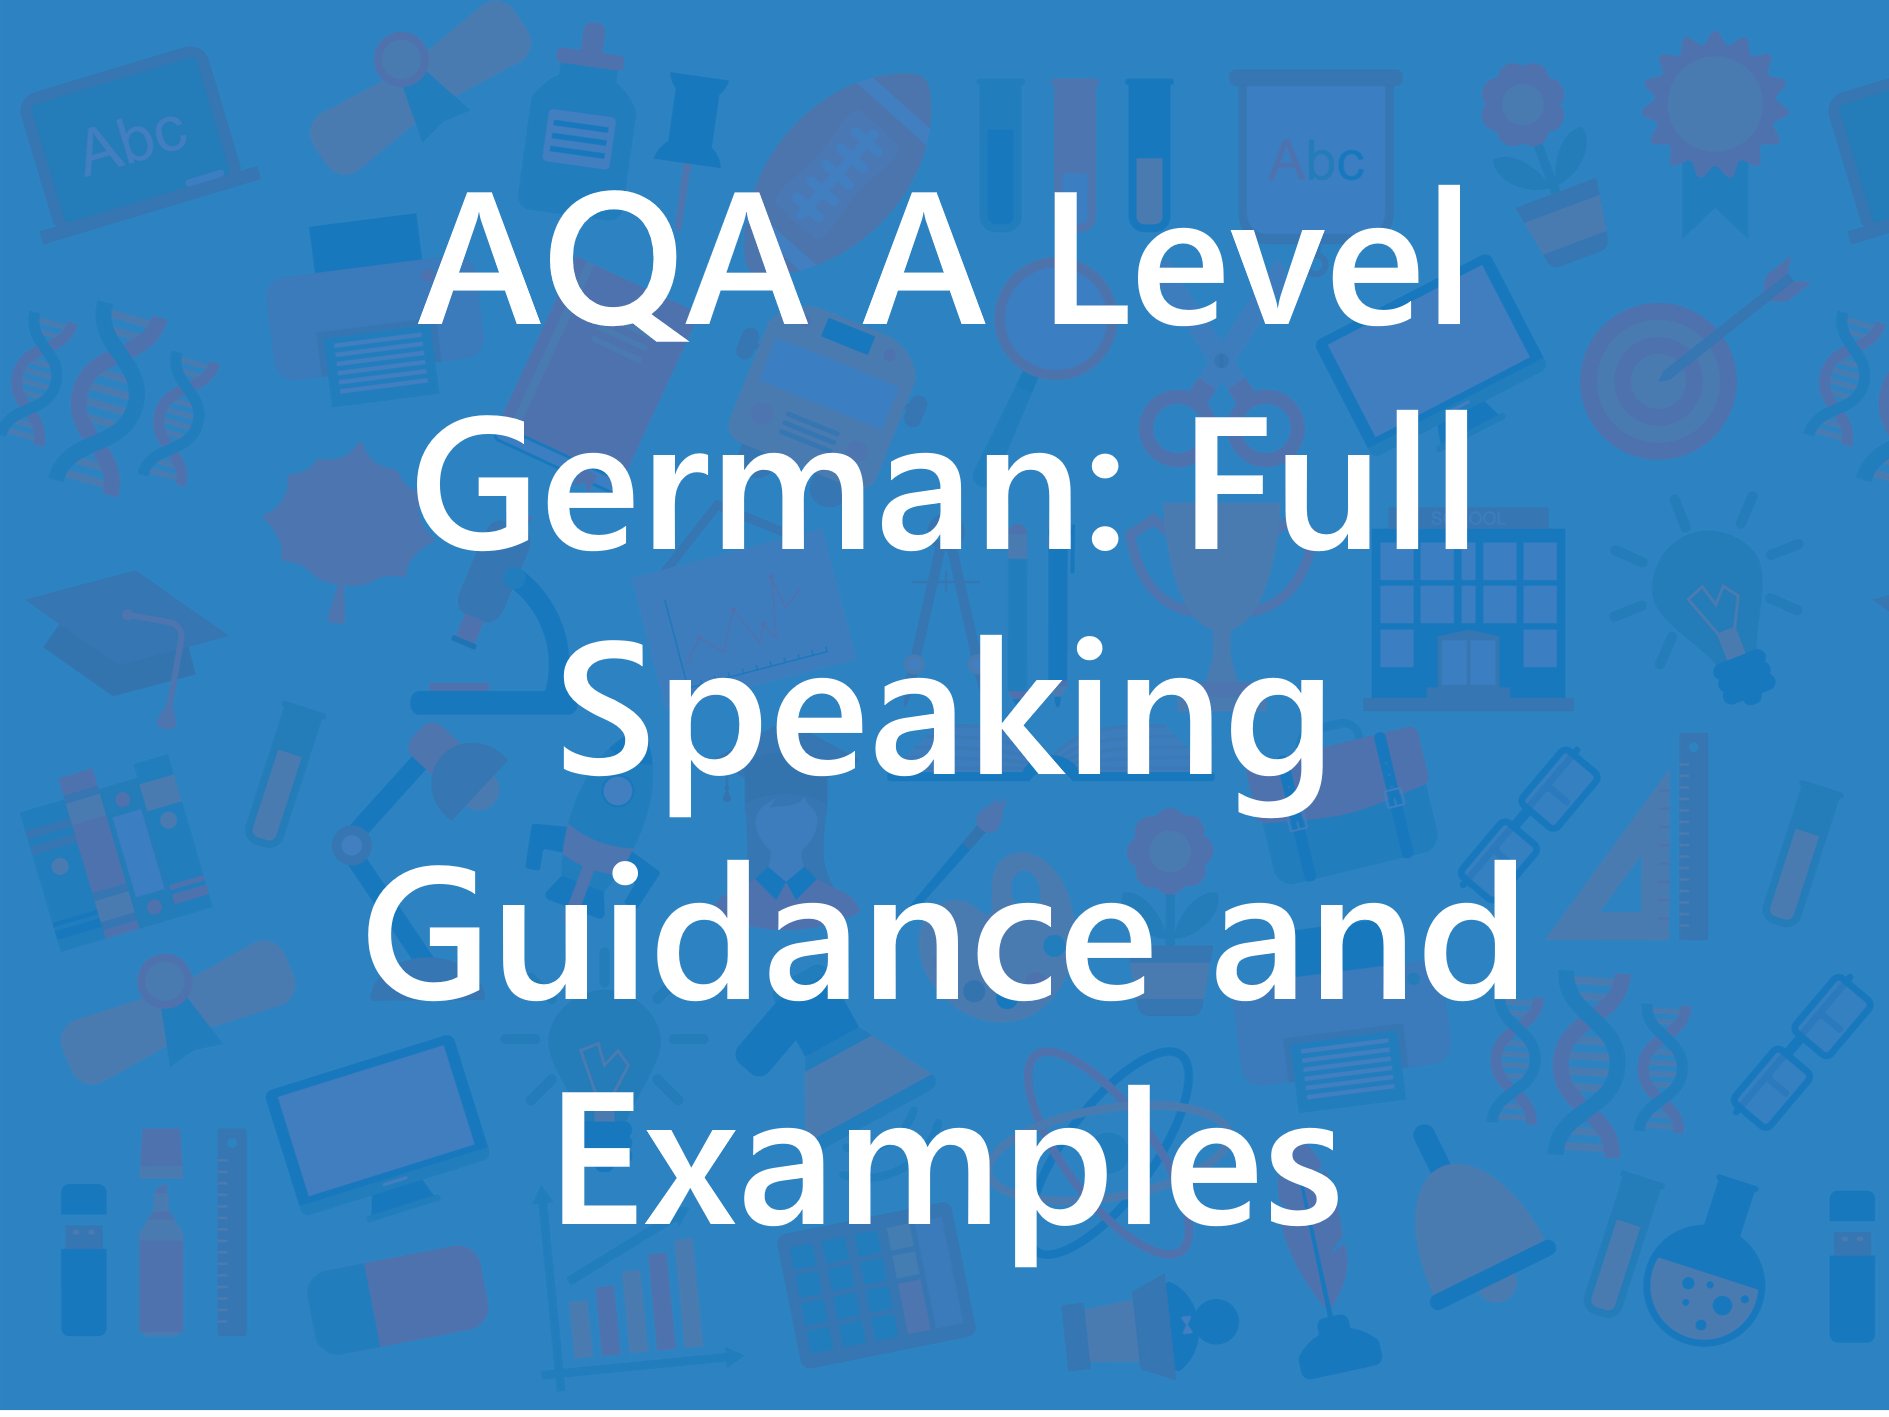 AQA A Level German: Full Speaking Guidance and Examples